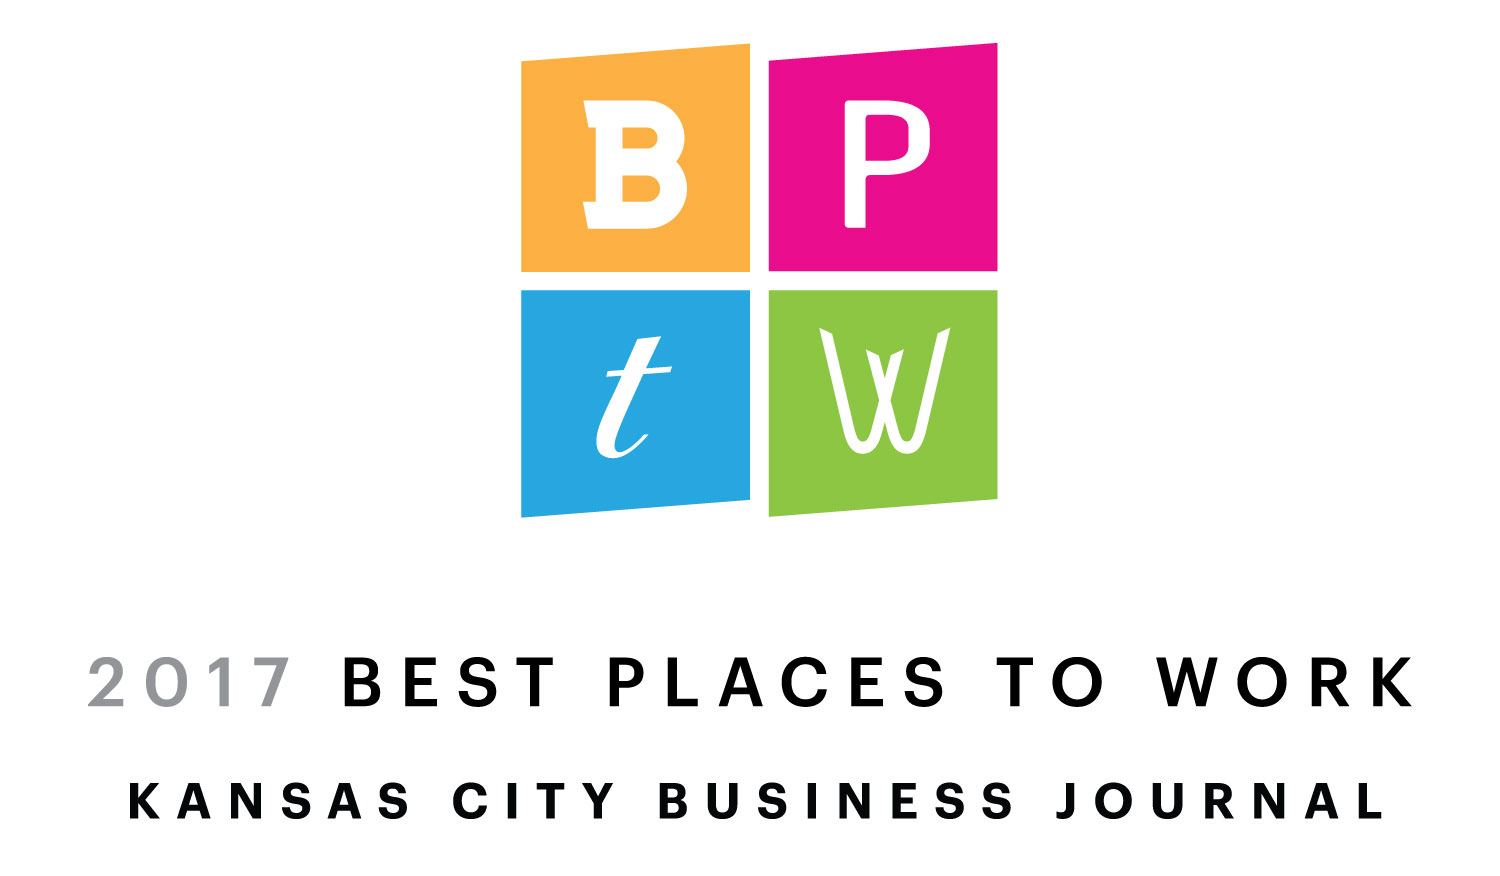 2017 Best Places to Work, Kansas City Business Journal